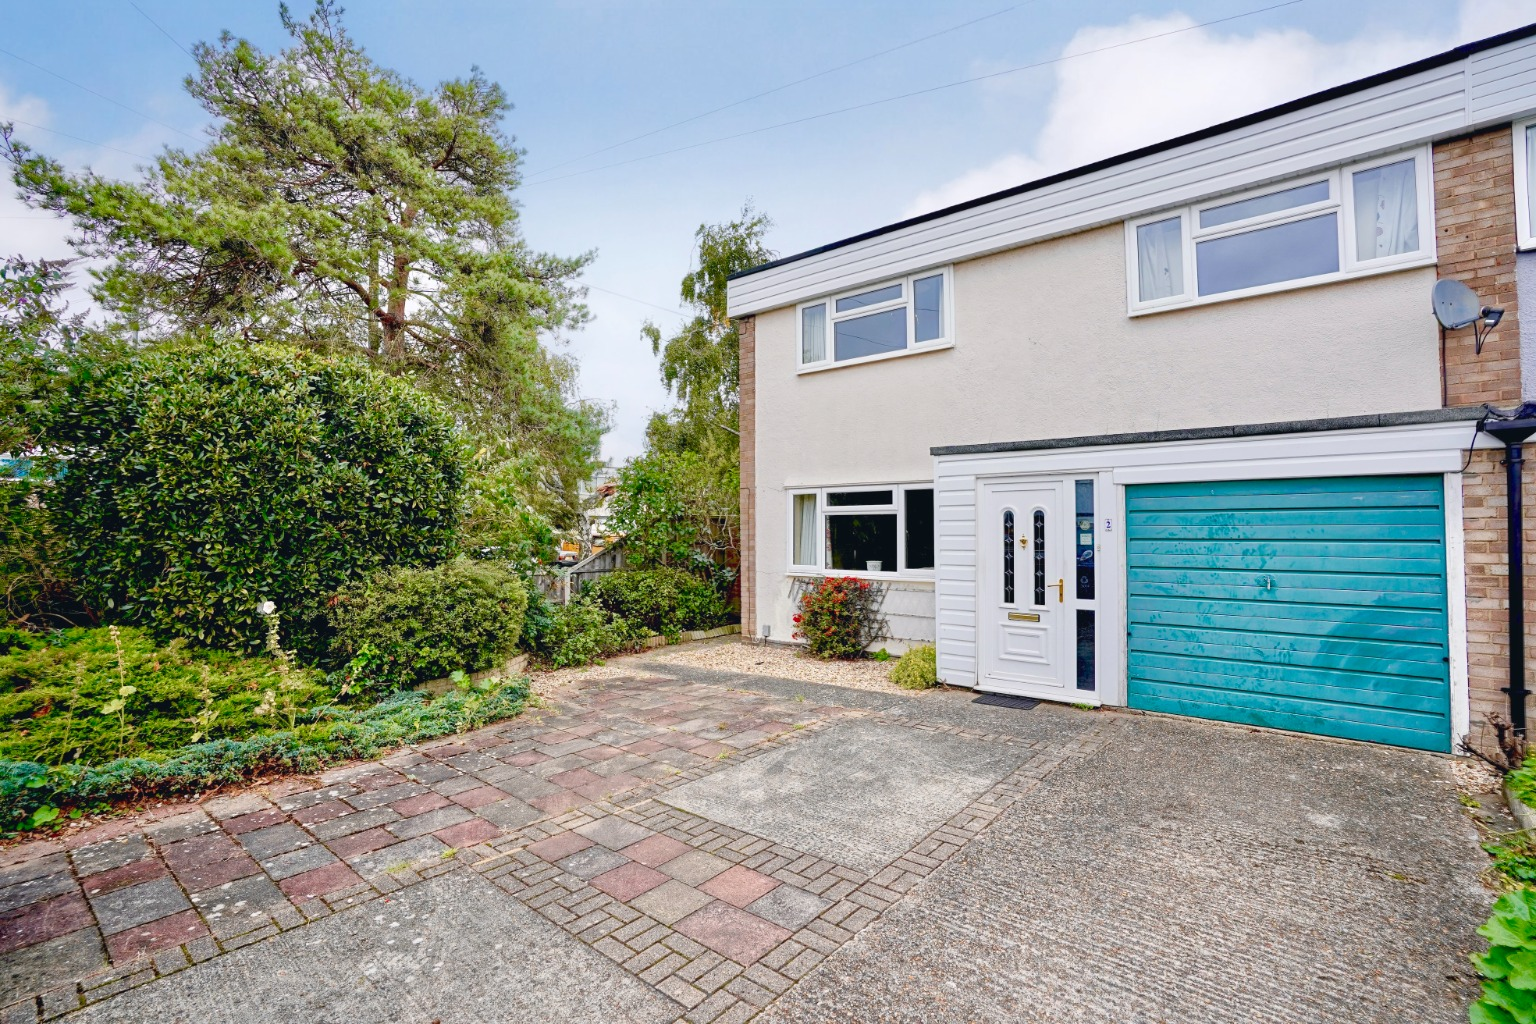 4 bed  for sale in Ouse Road, St. Neots, PE19